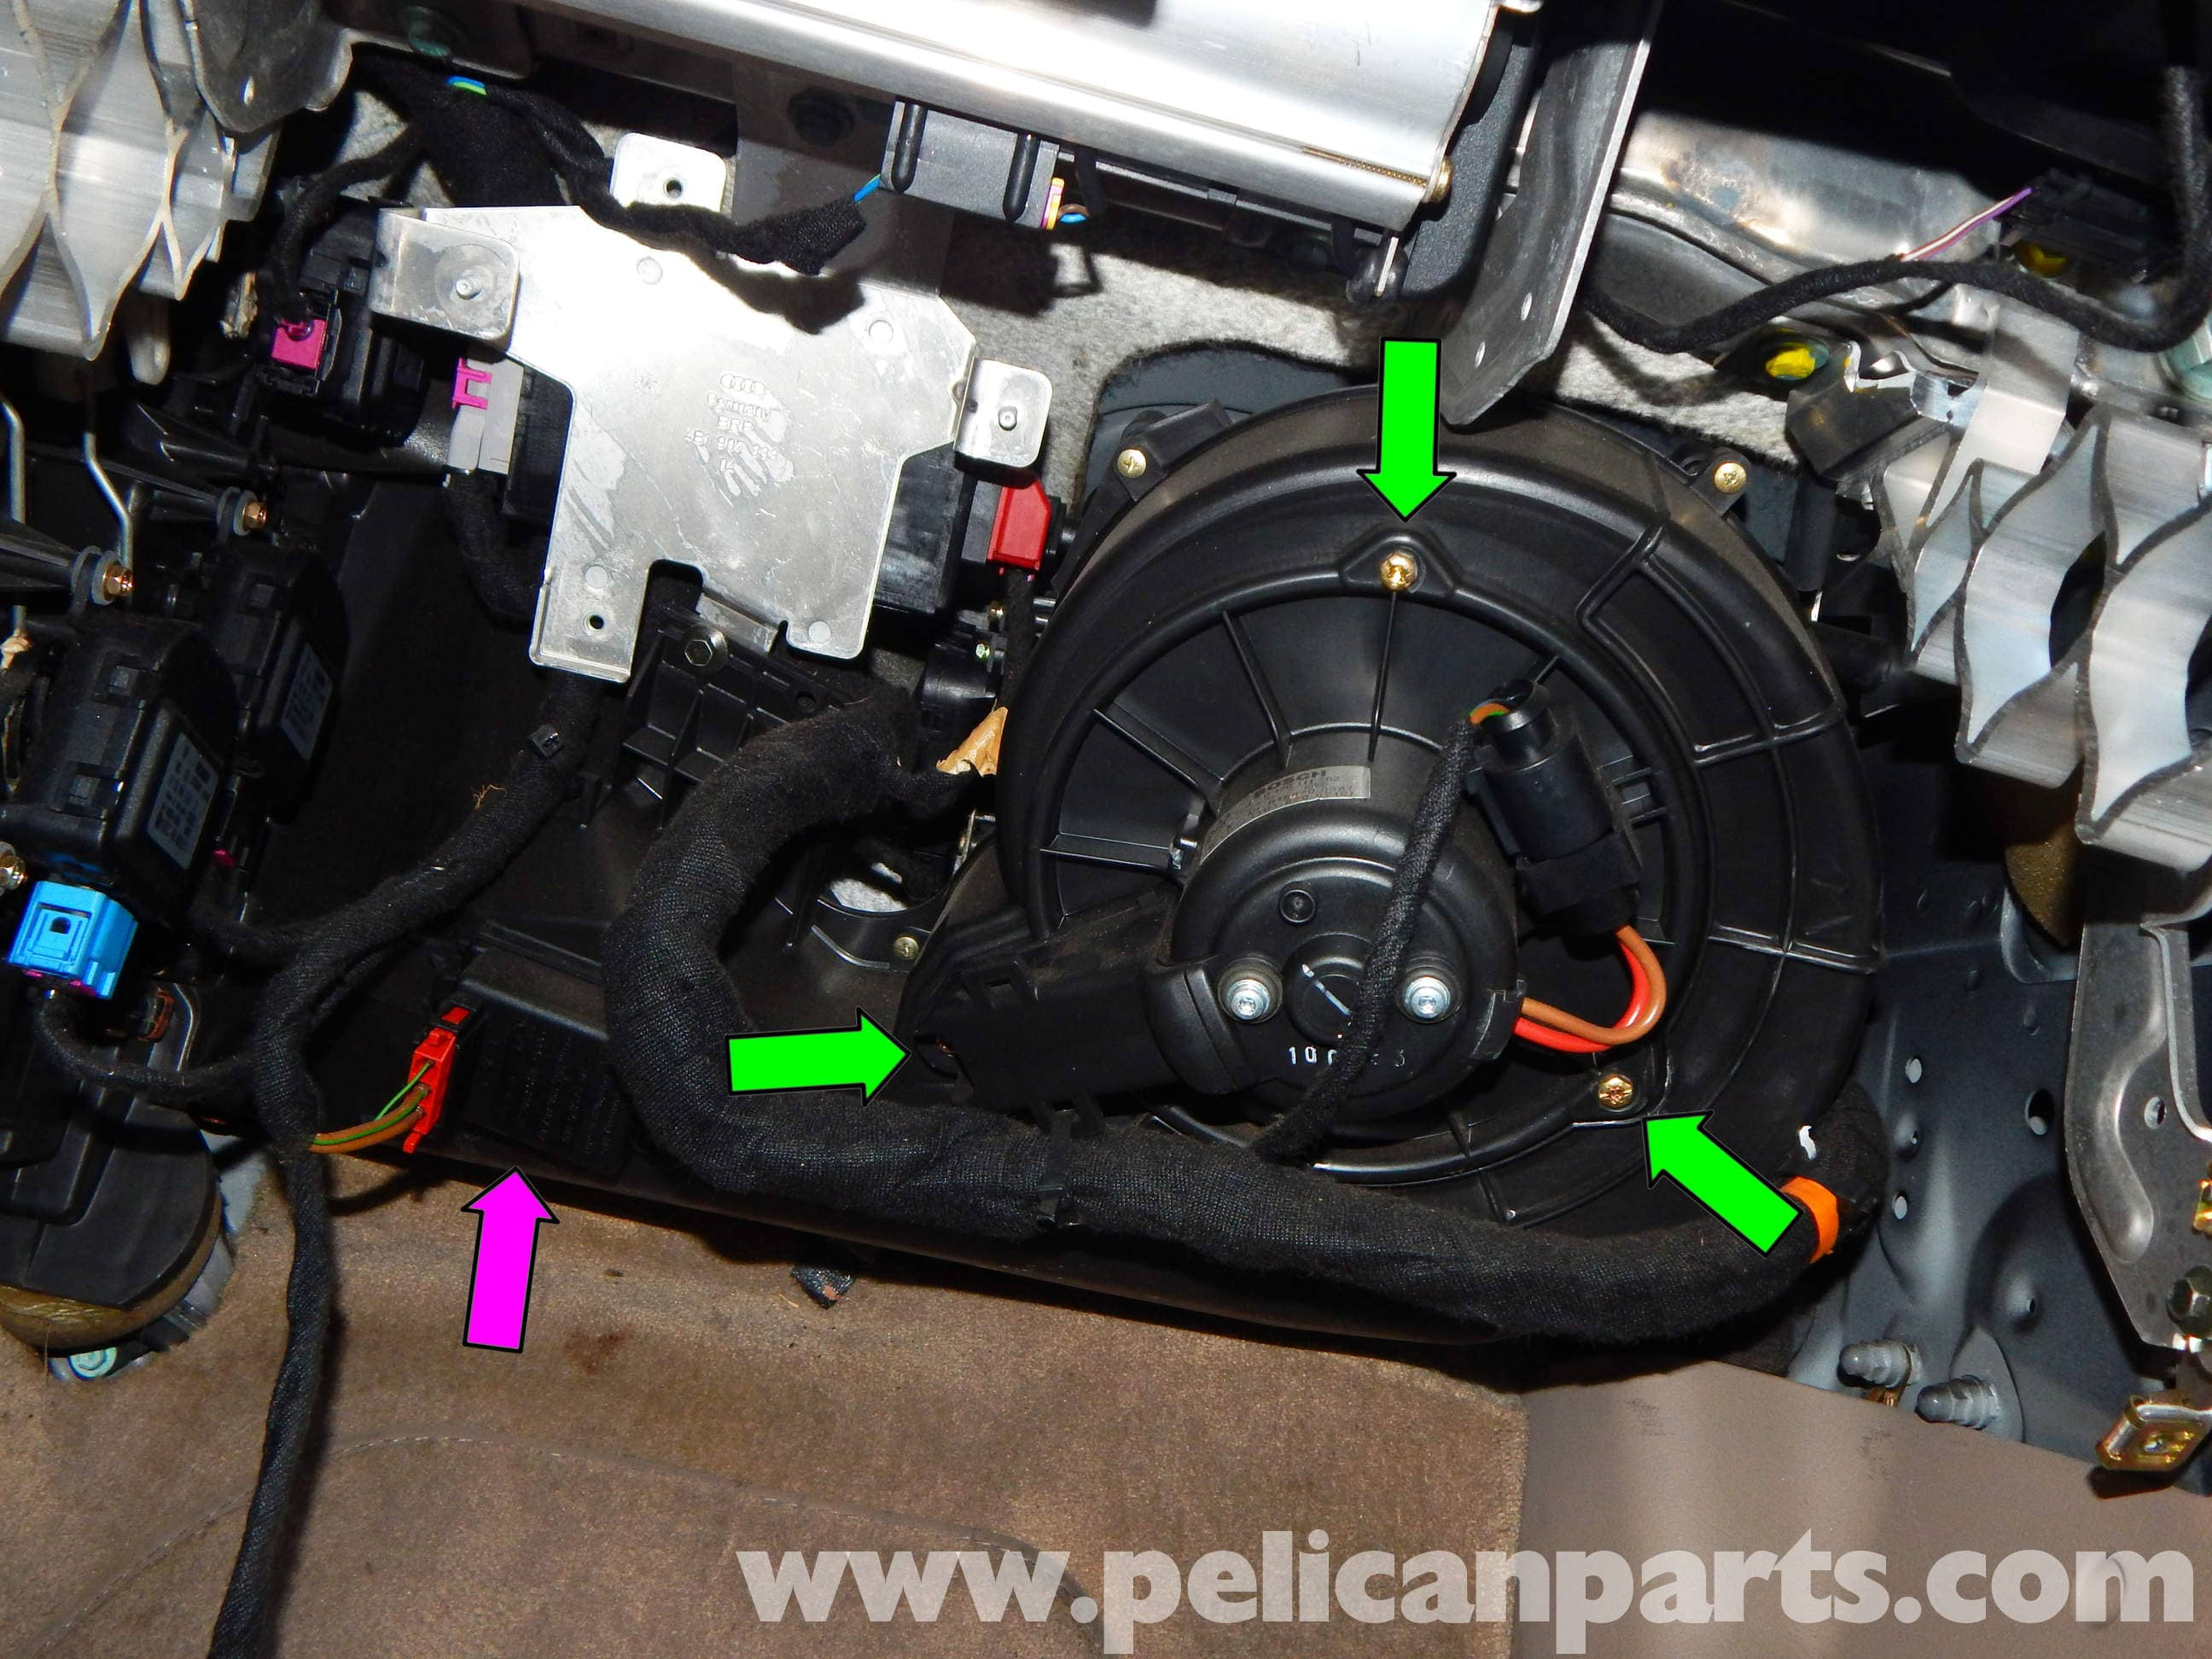 Pelican Technical Article Audi A6 C5 Hvac Blower Motor And